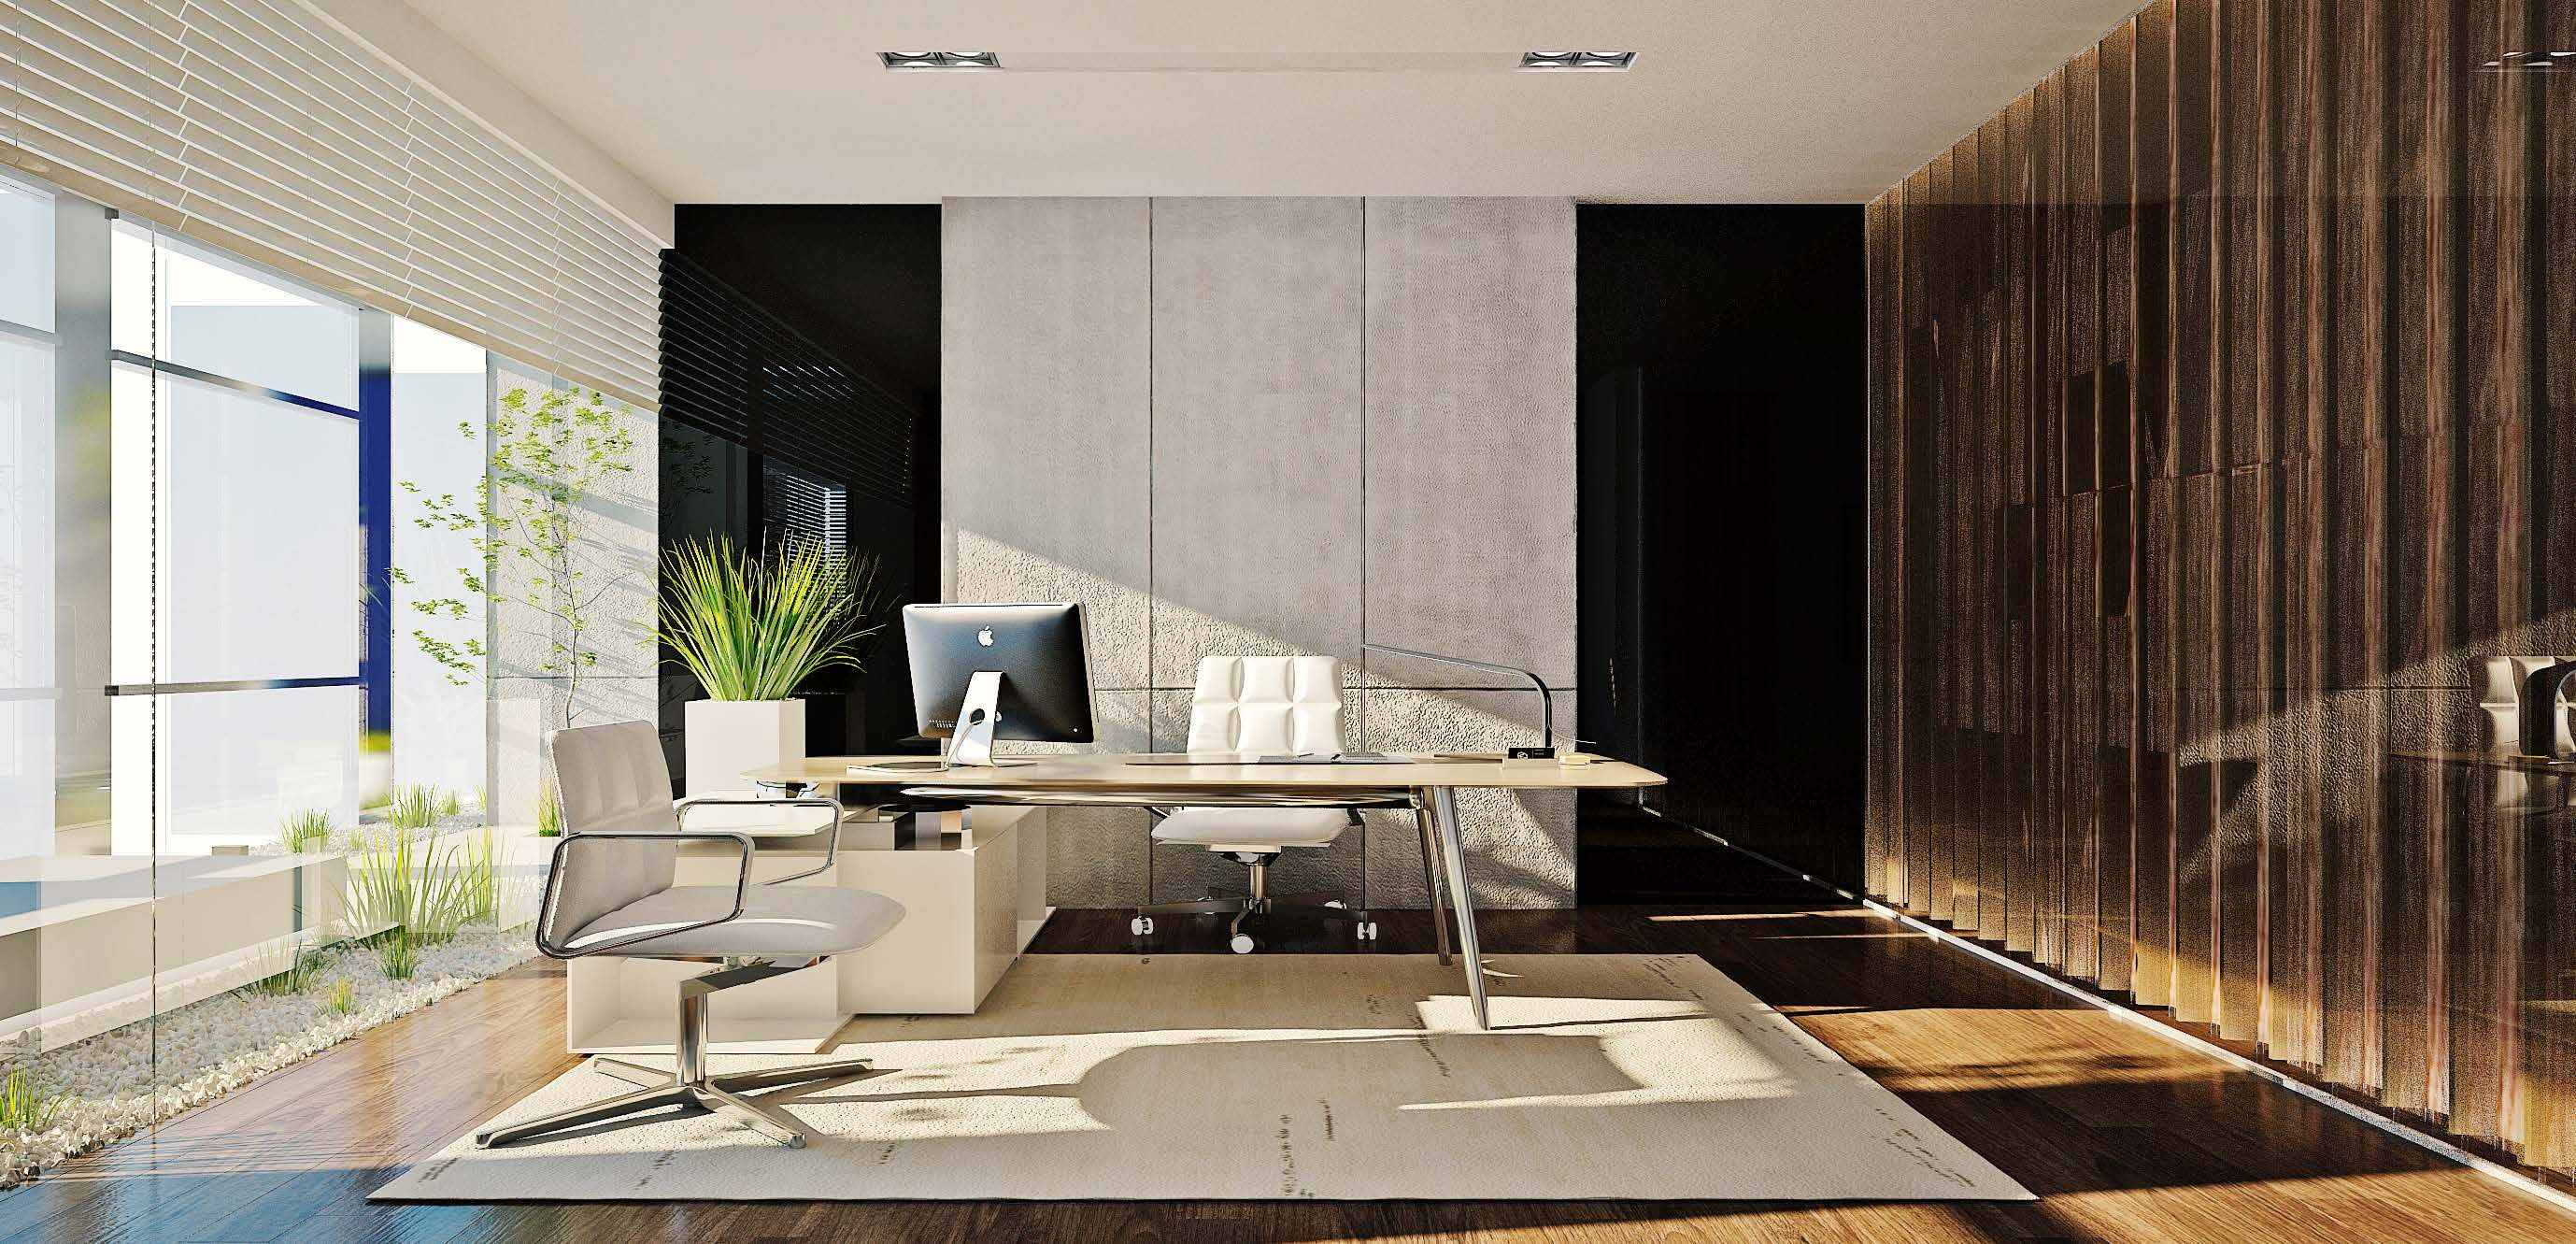 Luxury Office Home Office Decor Ideas Inspirations For Offices